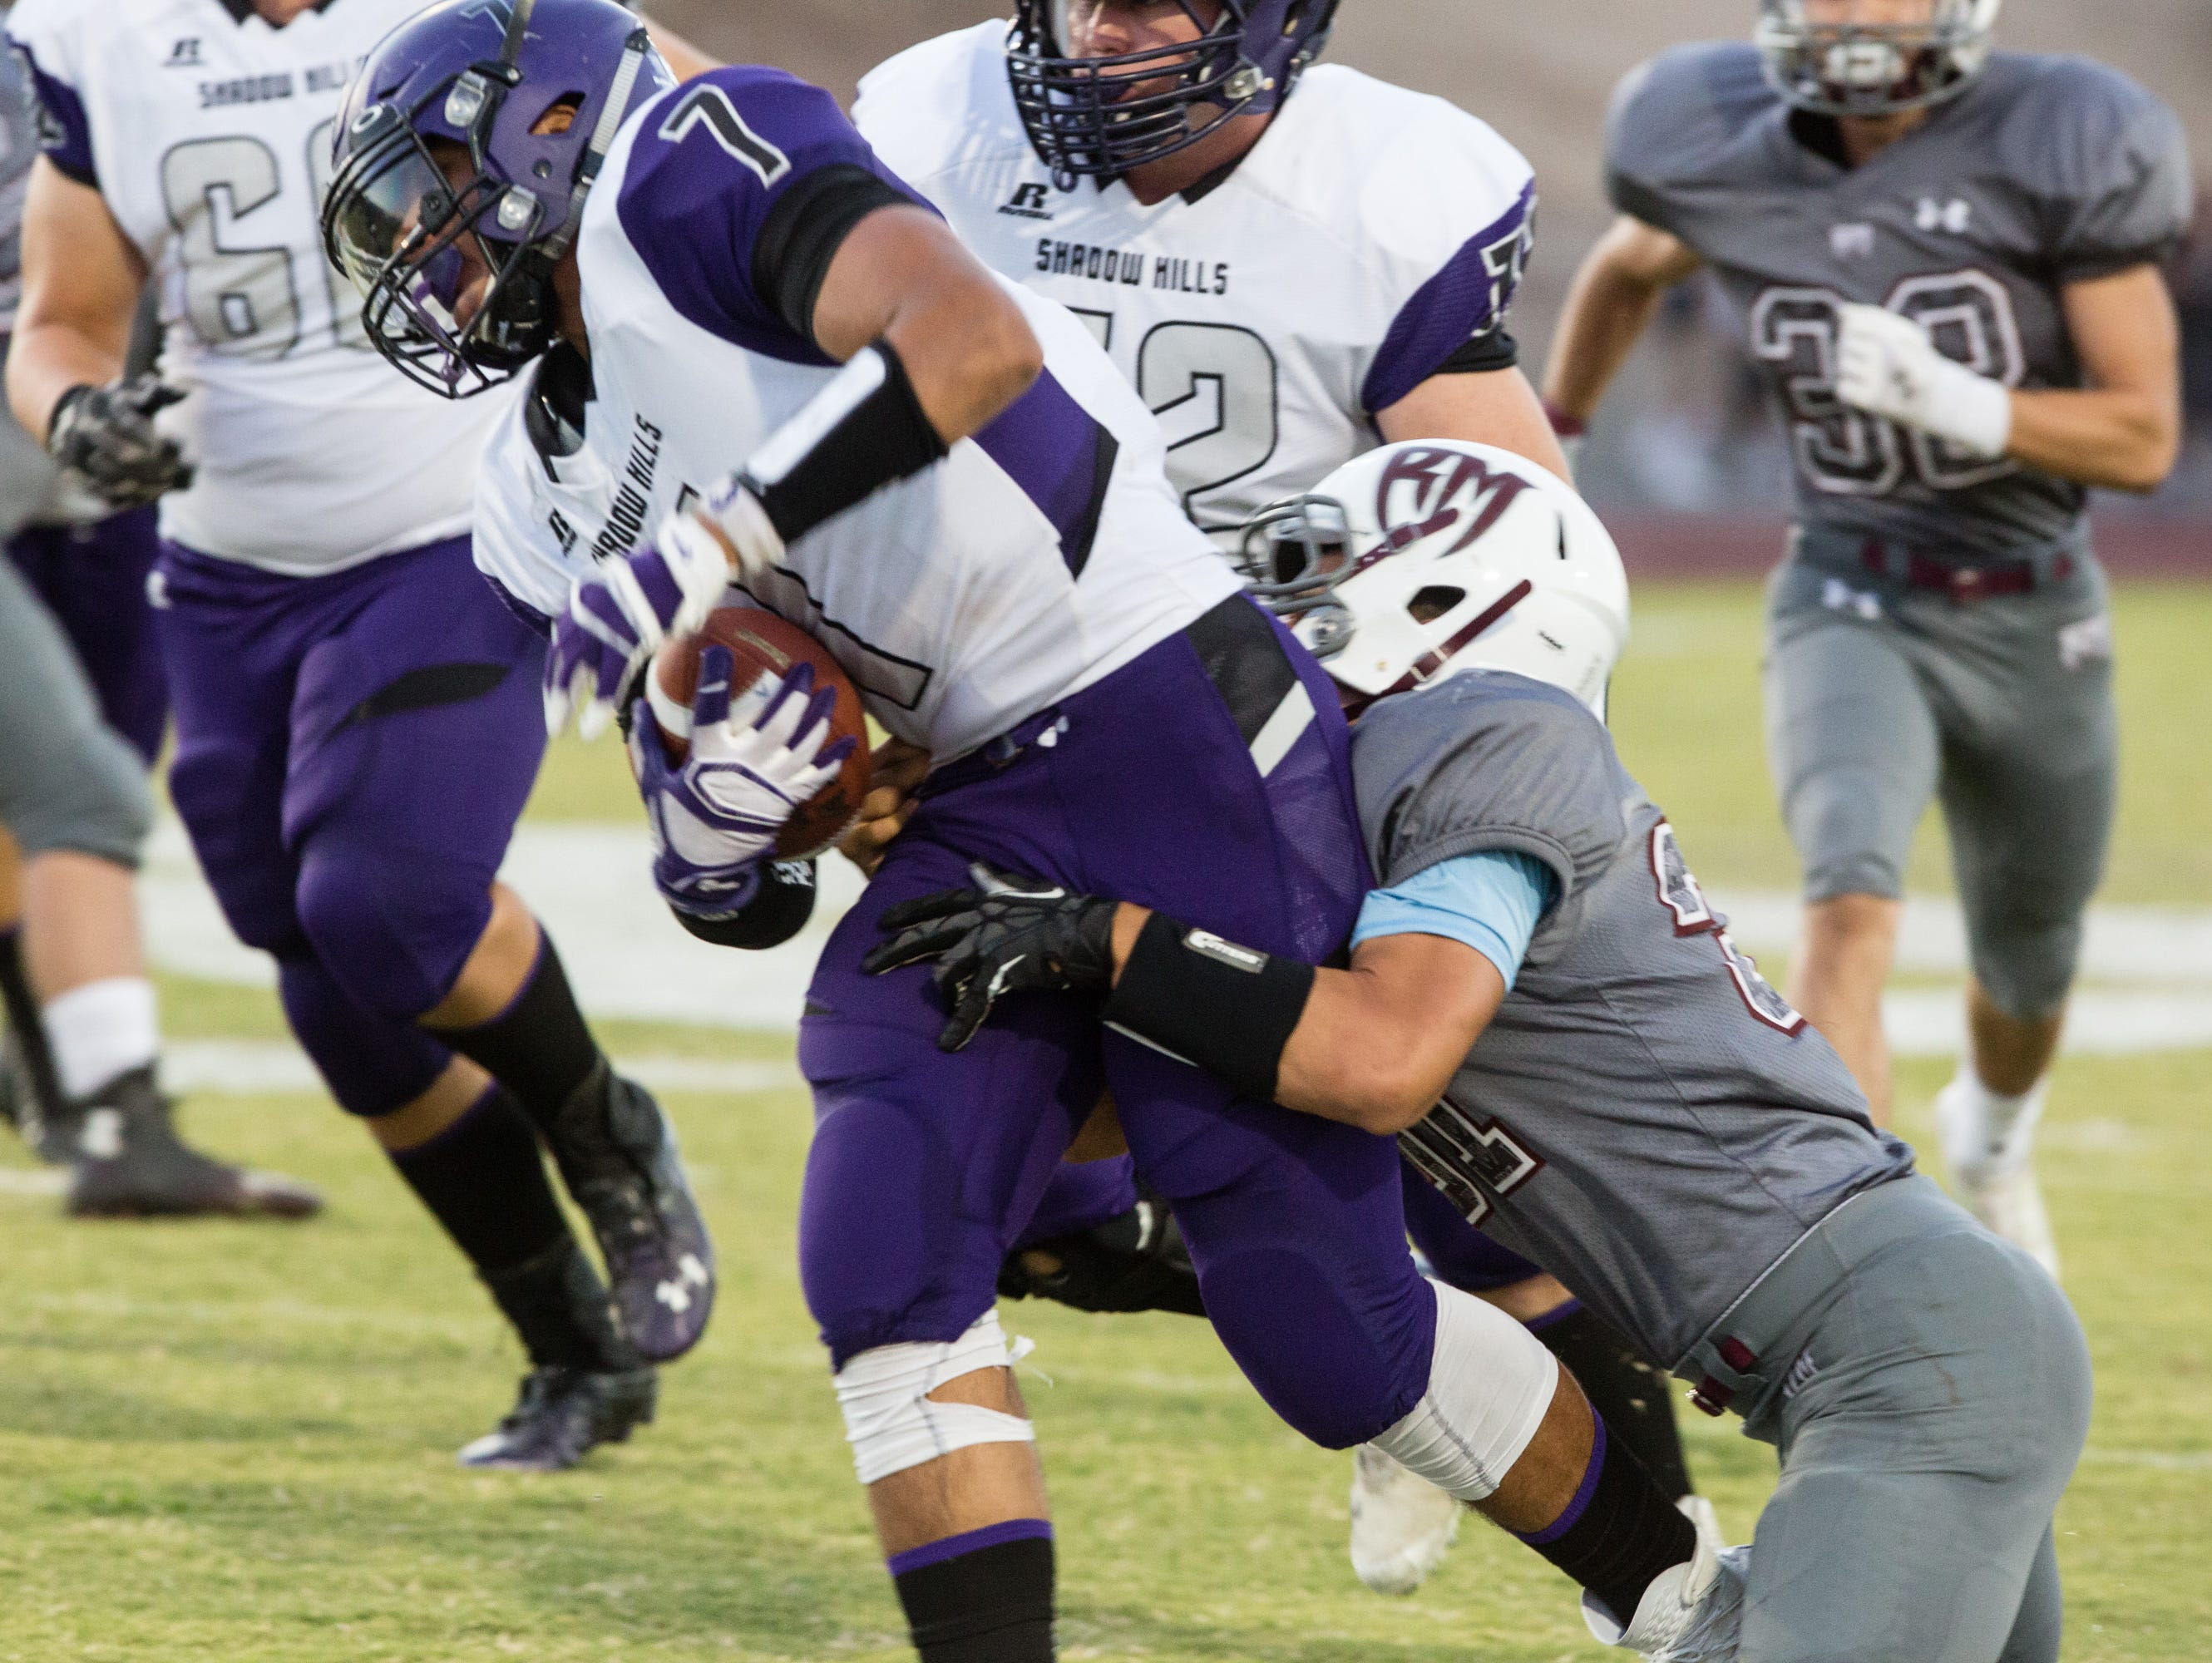 Sammy Venegas carries the ball for Shadow Hills, Friday, Sept. 2, 2016.